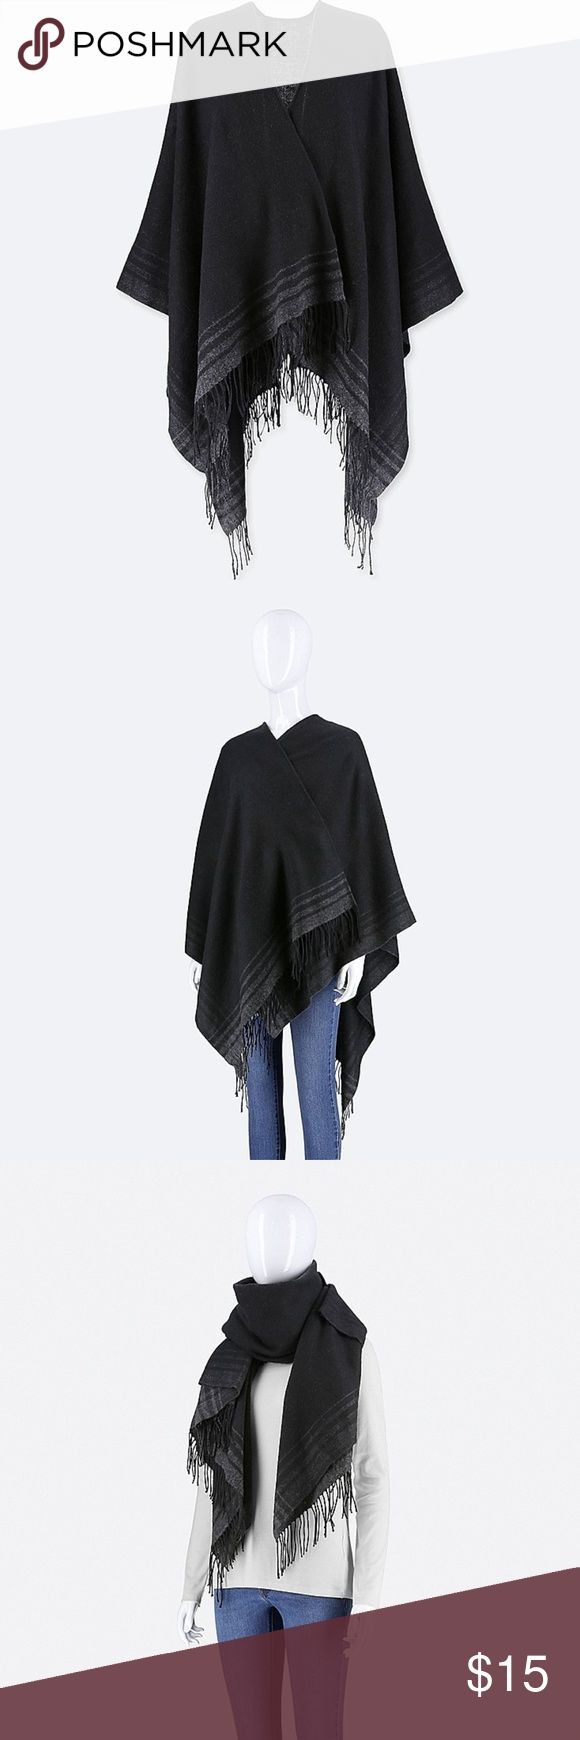 Black Uniqlo Frame Print 2-Way Stole/Poncho Brand new with tags. An elegant wool-blend stole that can also be worn as a wrap or poncho. Large size lets you wear it as a stole or wrap.   -Black  -One Size  -90% Acrylic, 10% Wool  -Imported Uniqlo Accessories Scarves & Wraps